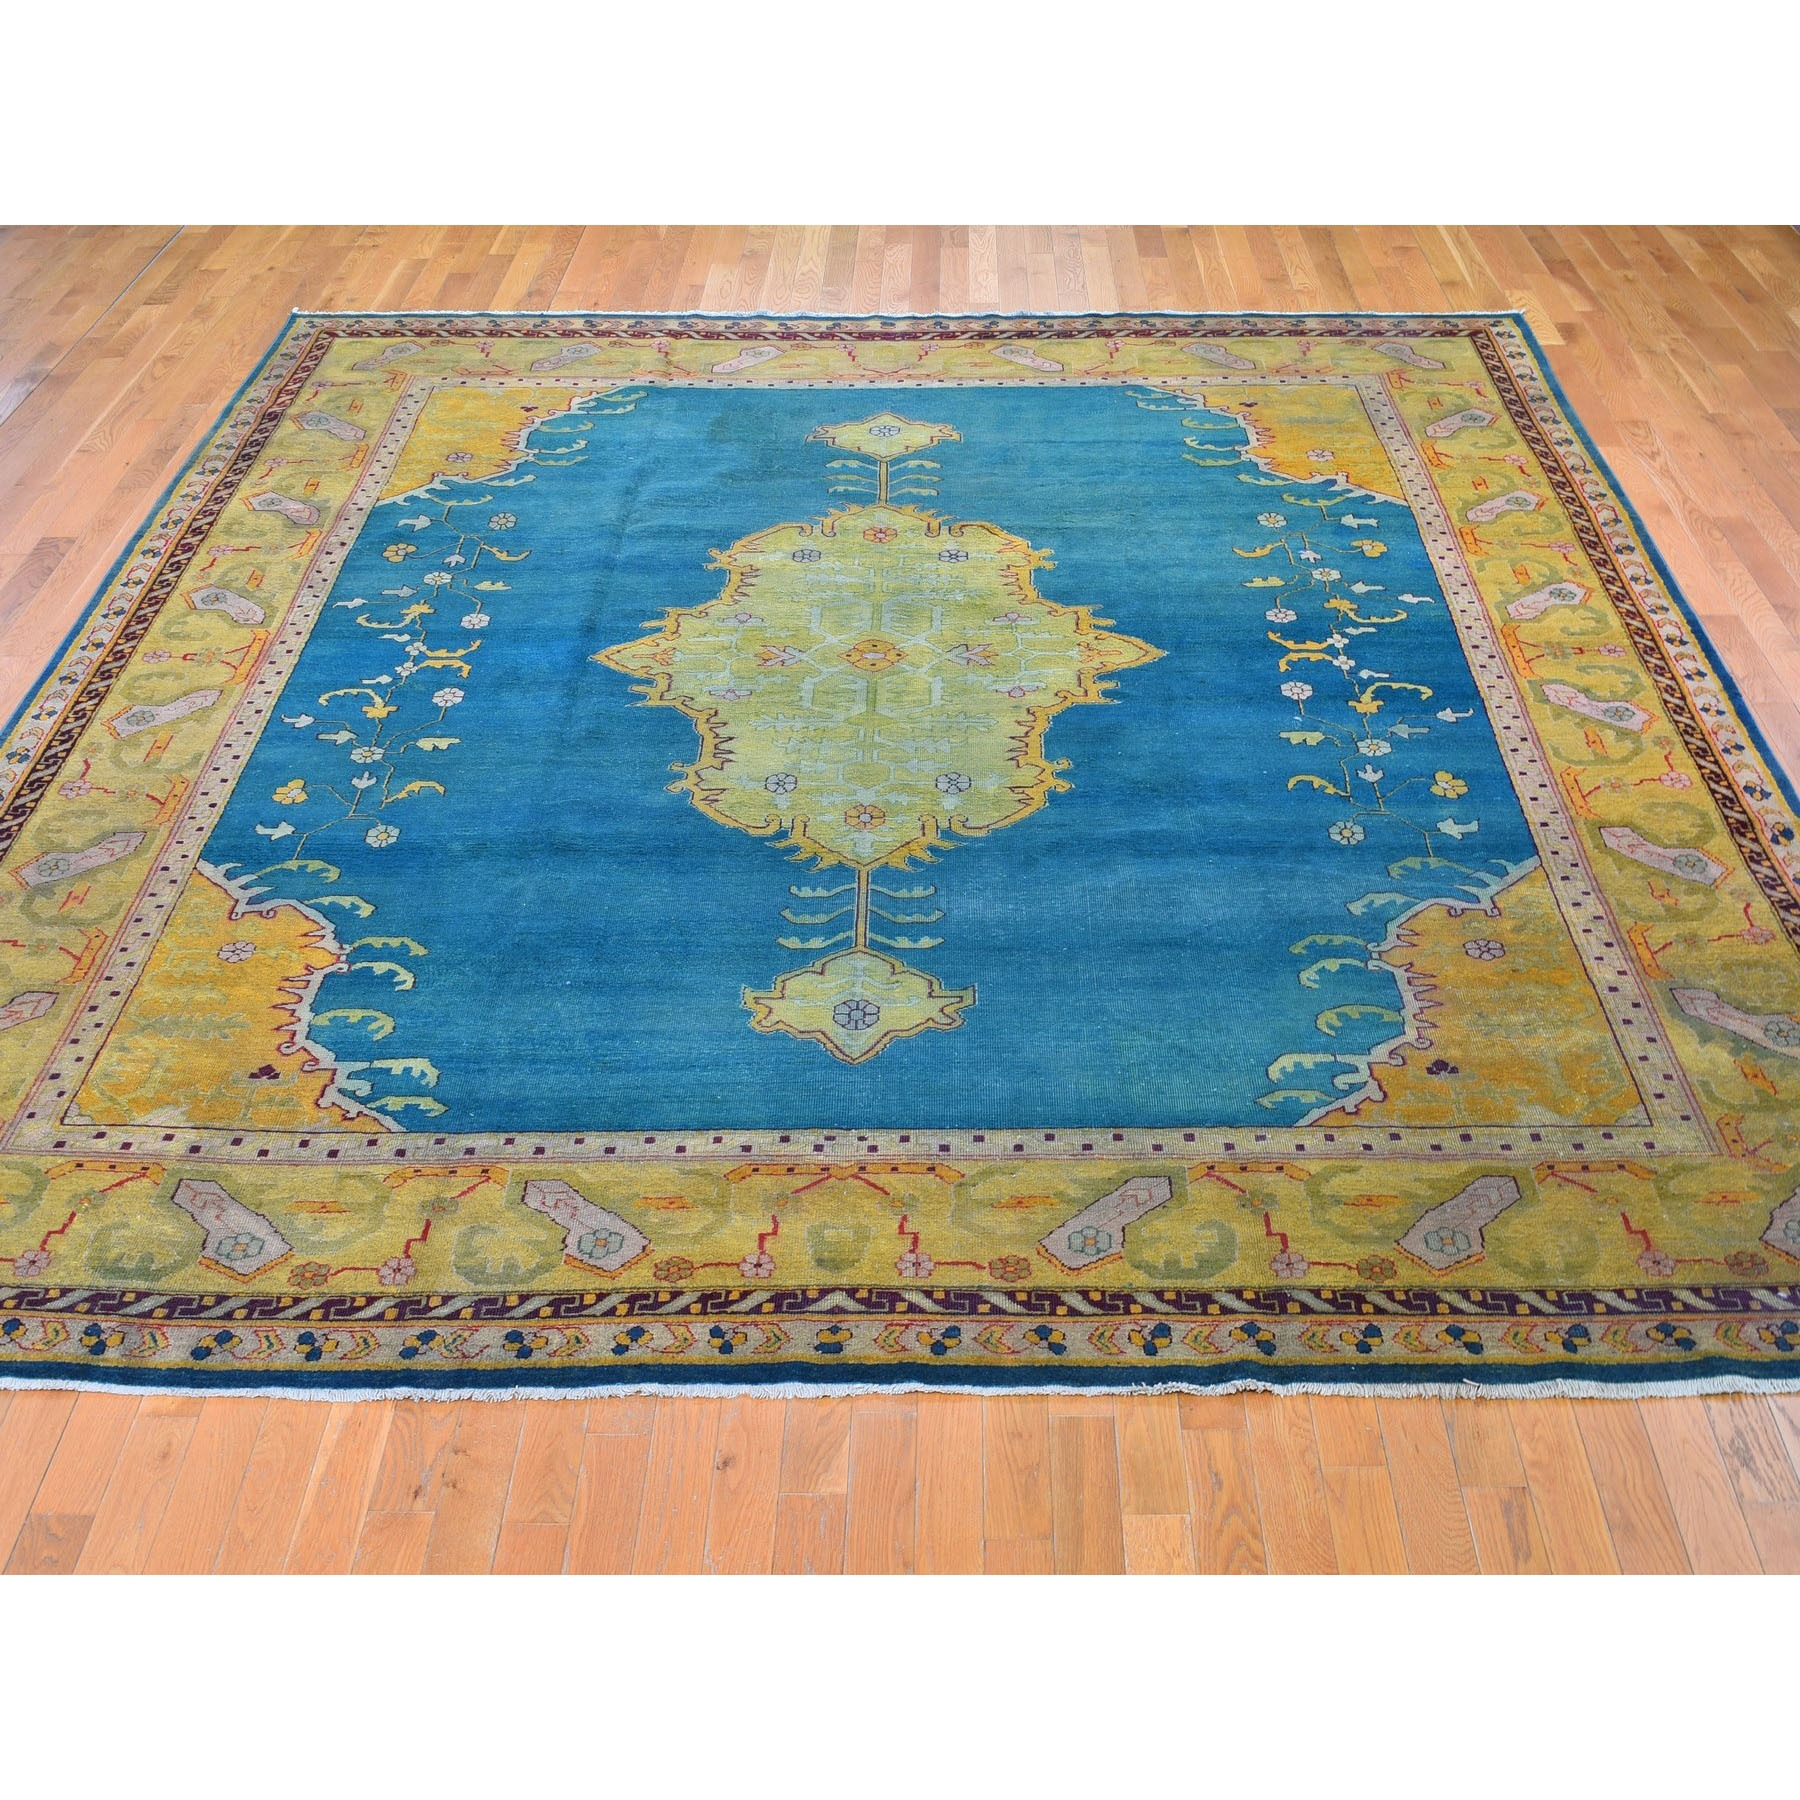 "11'x12'6"" Teal Antique Agra With Medallion Open Field Clean Good Cond Hand Knotted Oriental Rug"